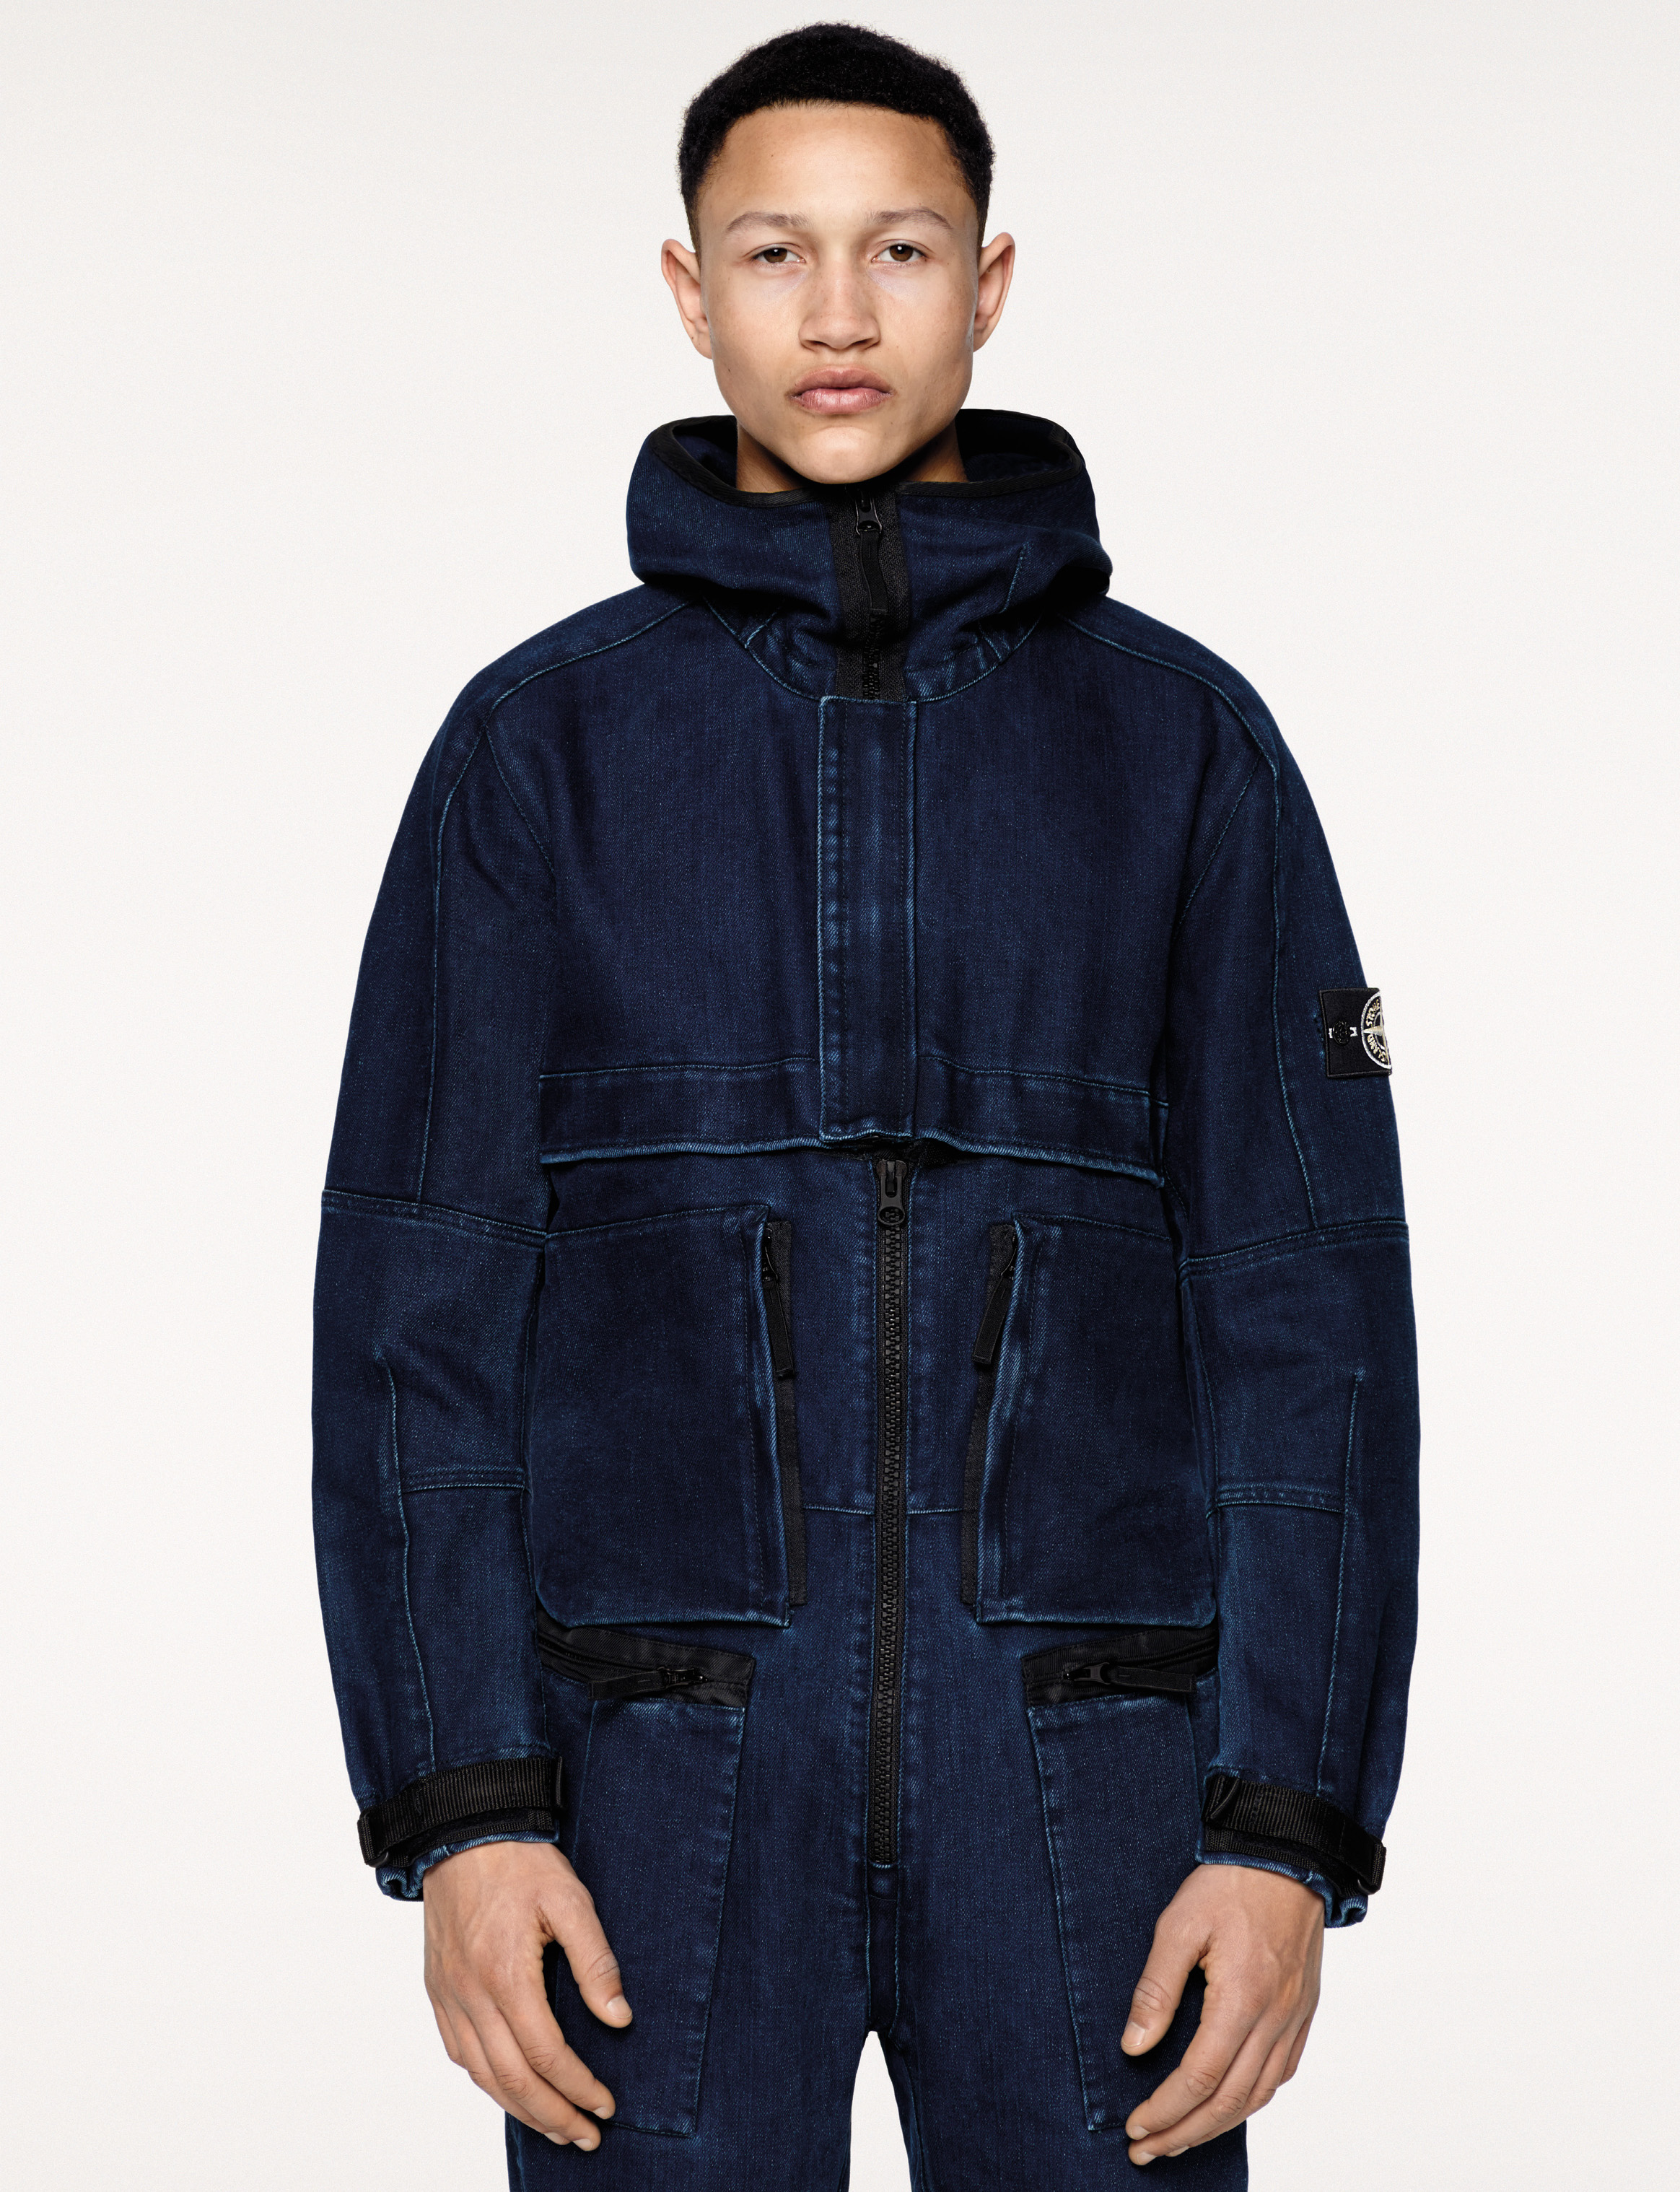 Stone Island bets on polypropylene denim